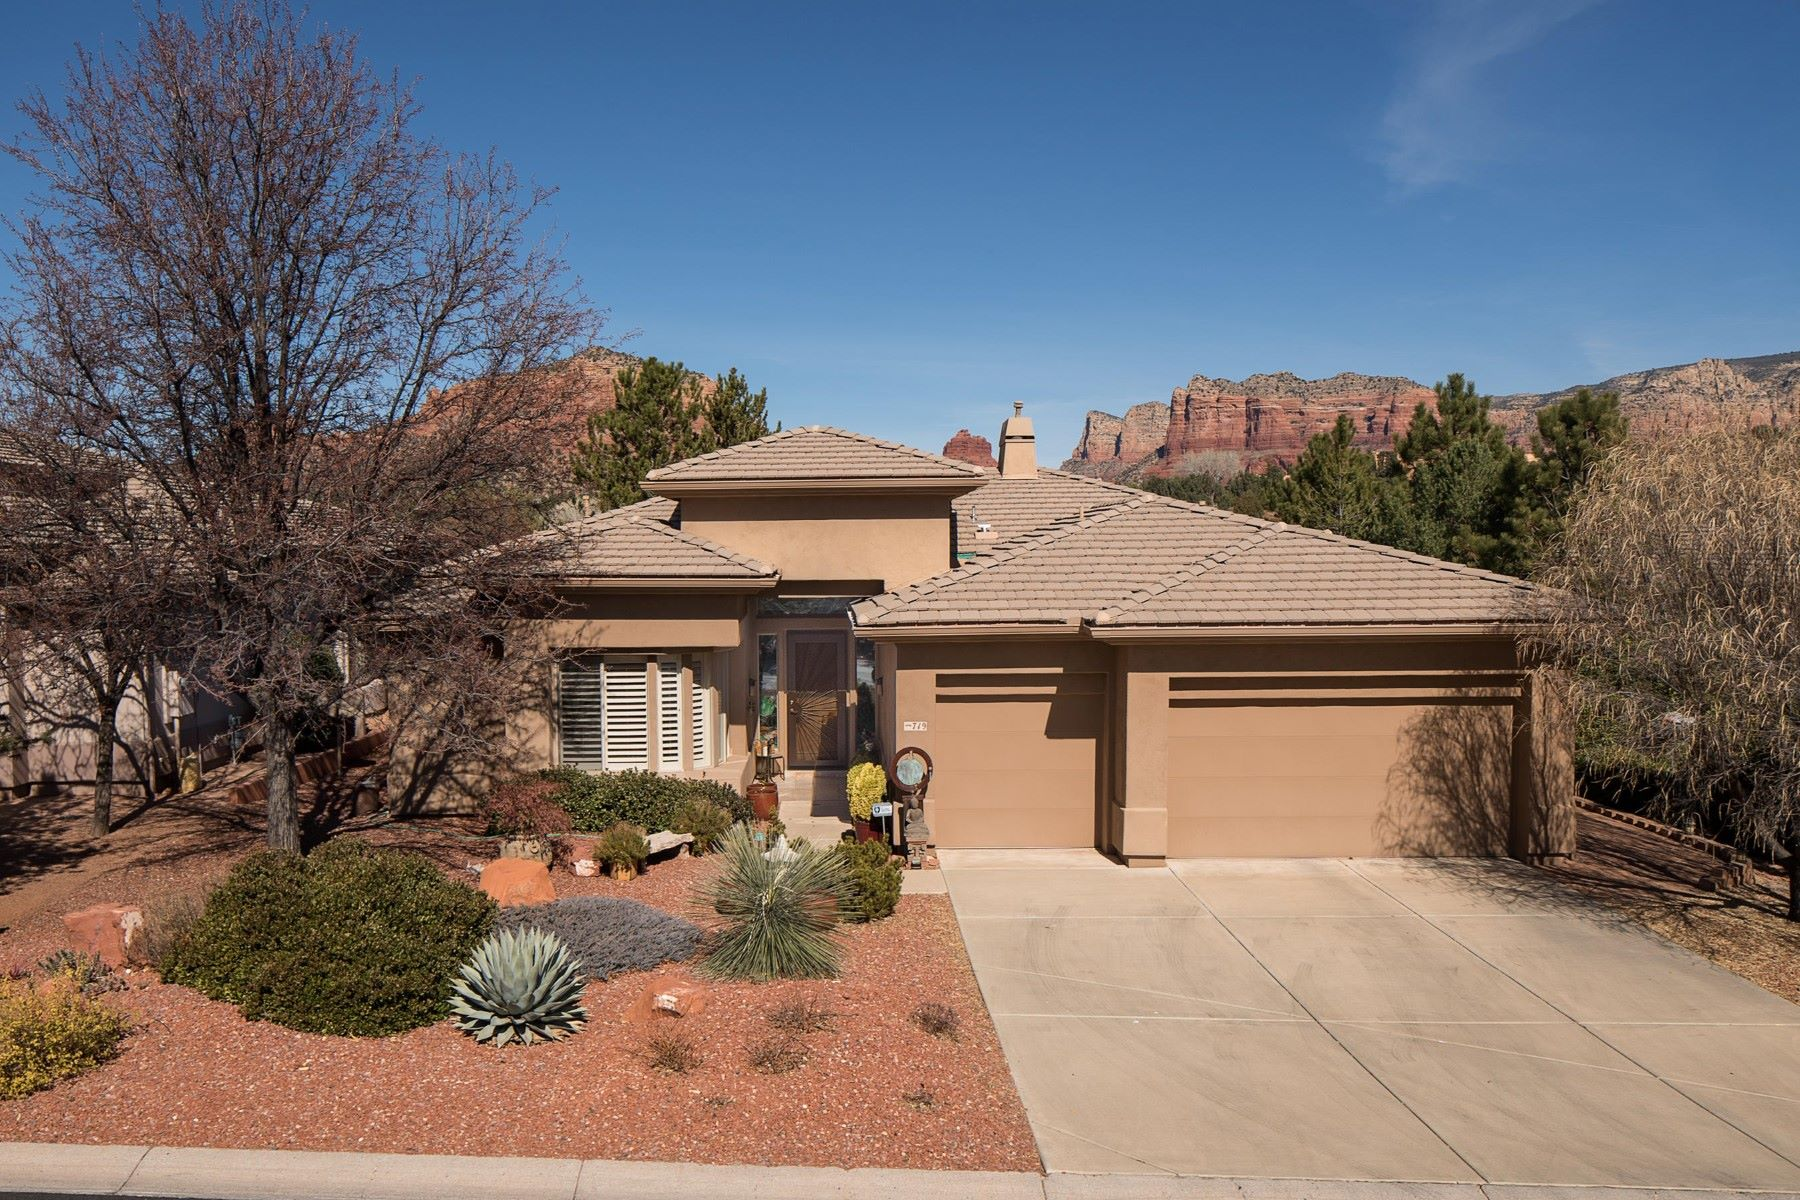 Single Family Home for Sale at Meticulously Maintained Sedona Golf Resort Home 719 Crown Ridge Rd, Sedona, Arizona, 86351 United States